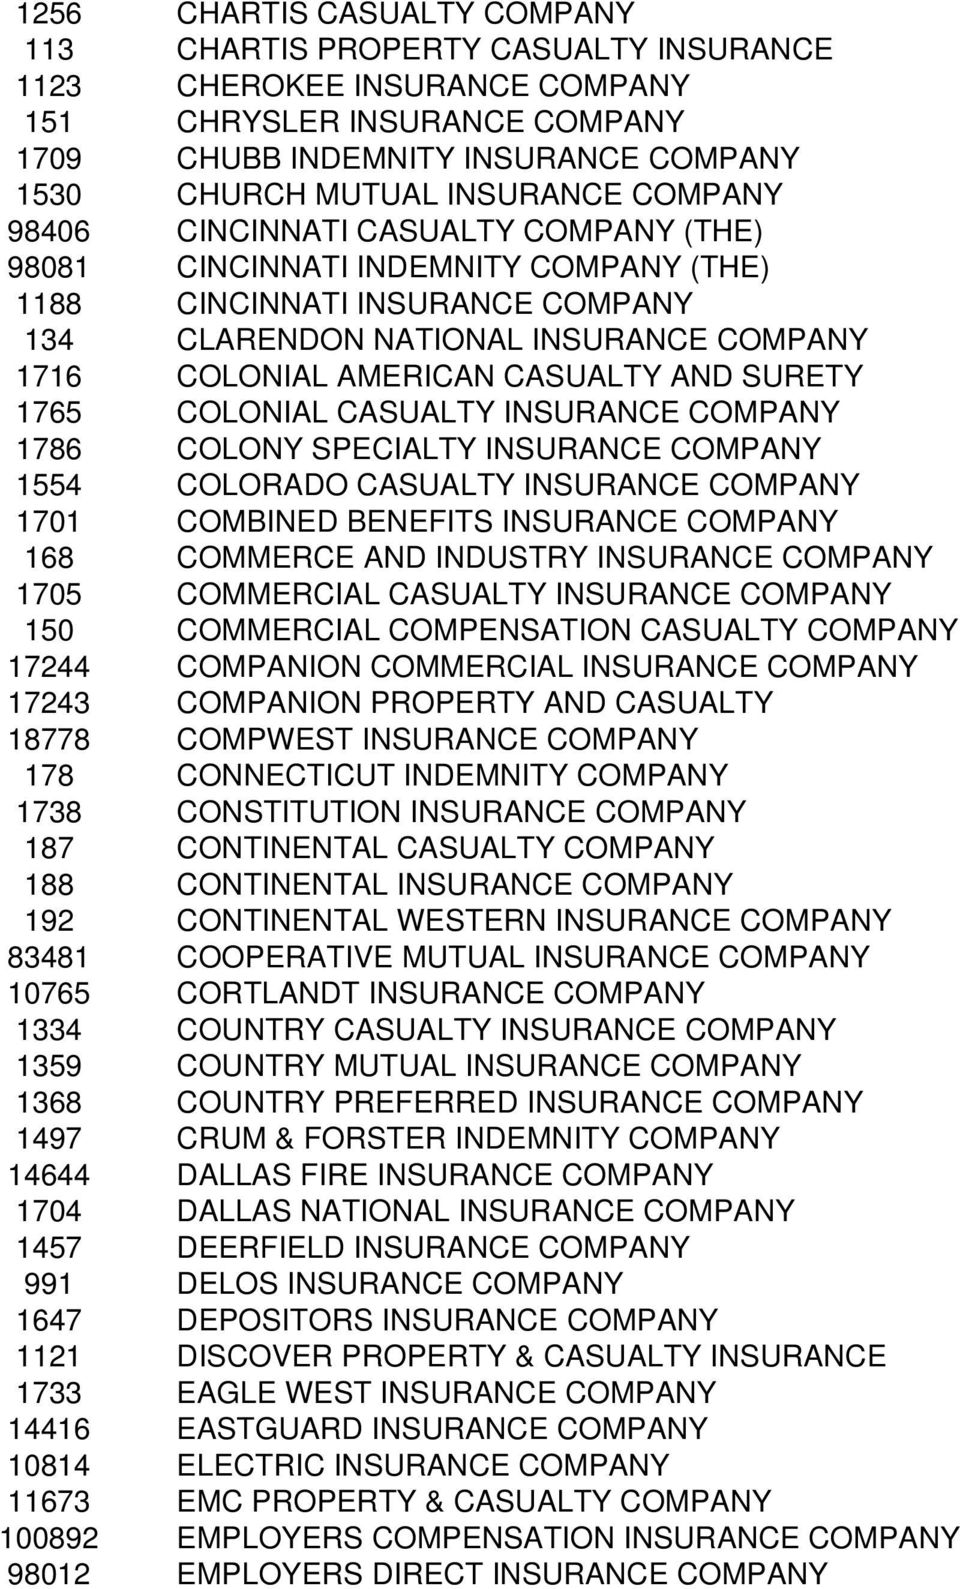 CASUALTY AND SURETY 1765 COLONIAL CASUALTY INSURANCE COMPANY 1786 COLONY SPECIALTY INSURANCE COMPANY 1554 COLORADO CASUALTY INSURANCE COMPANY 1701 COMBINED BENEFITS INSURANCE COMPANY 168 COMMERCE AND